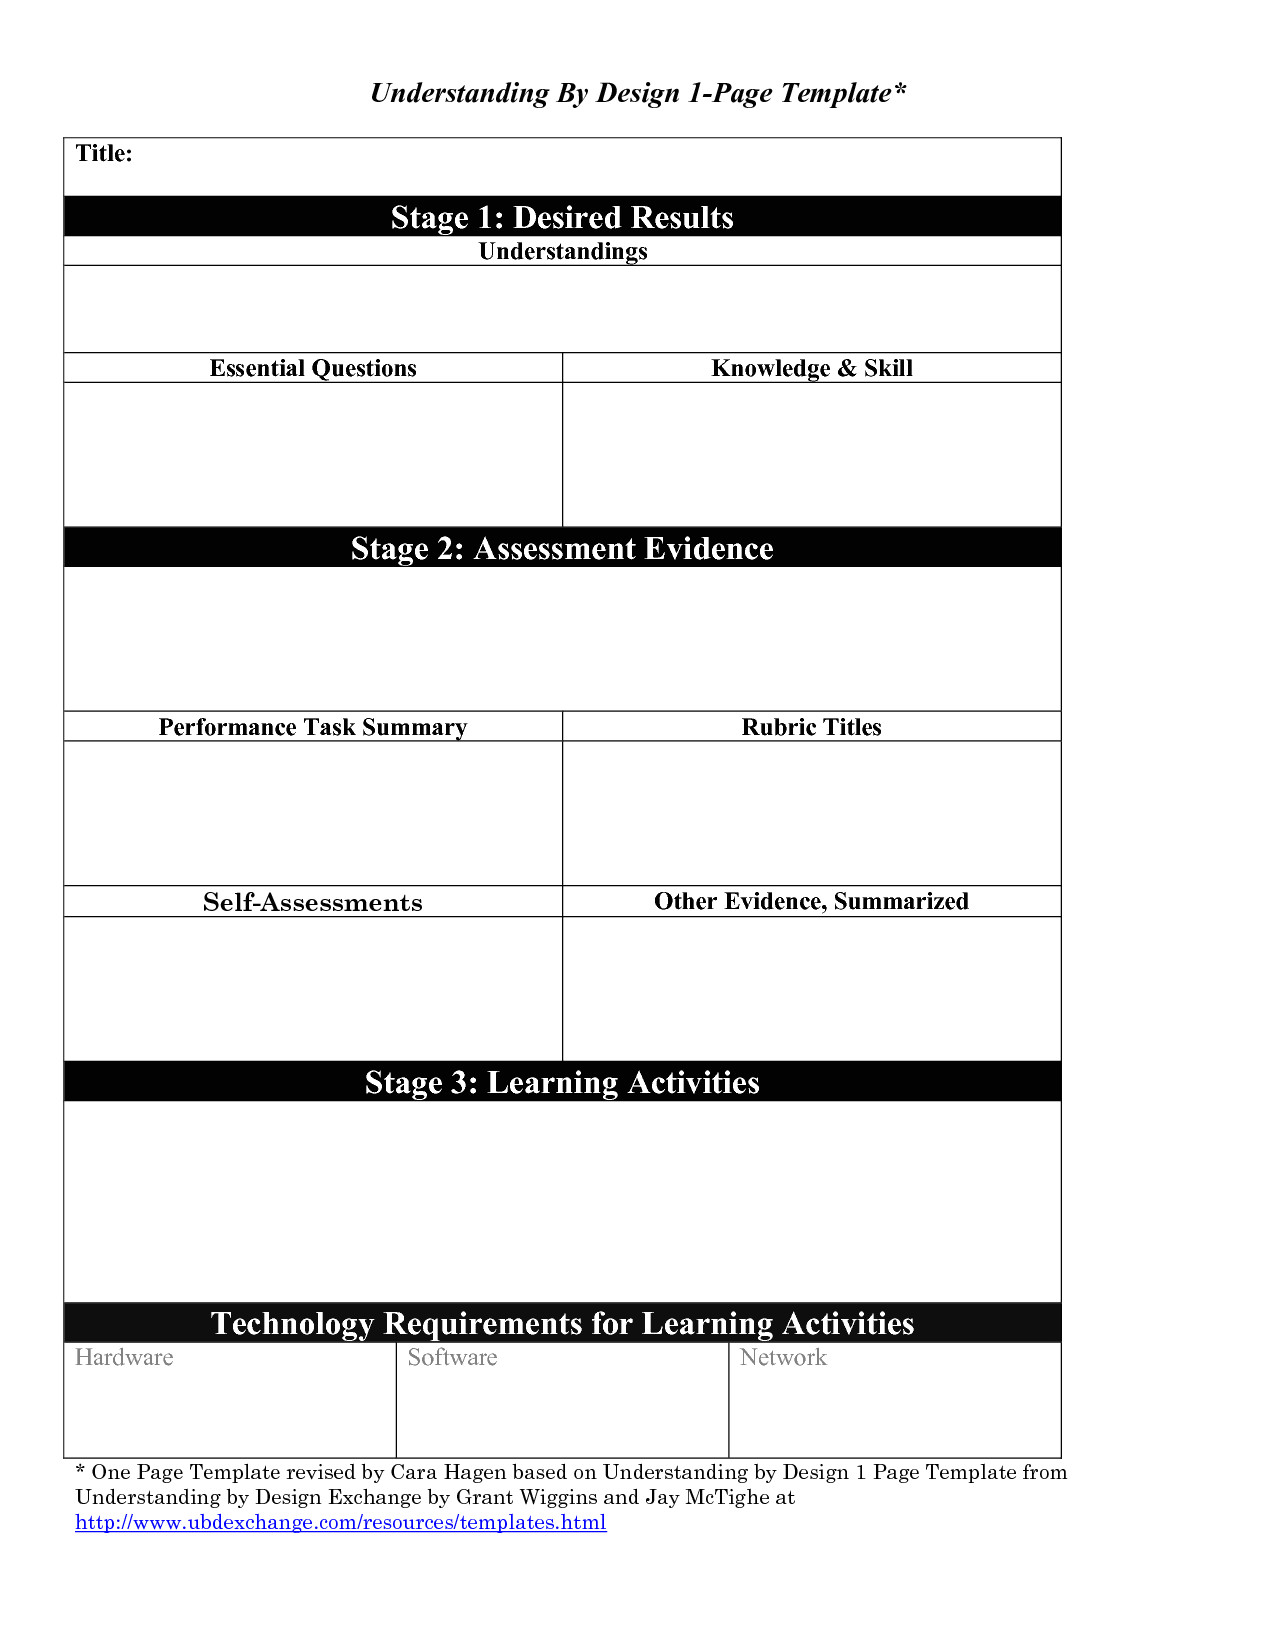 Understanding by Design Unit Plan Template Understanding by Design 1 Page Template Doc Understanding